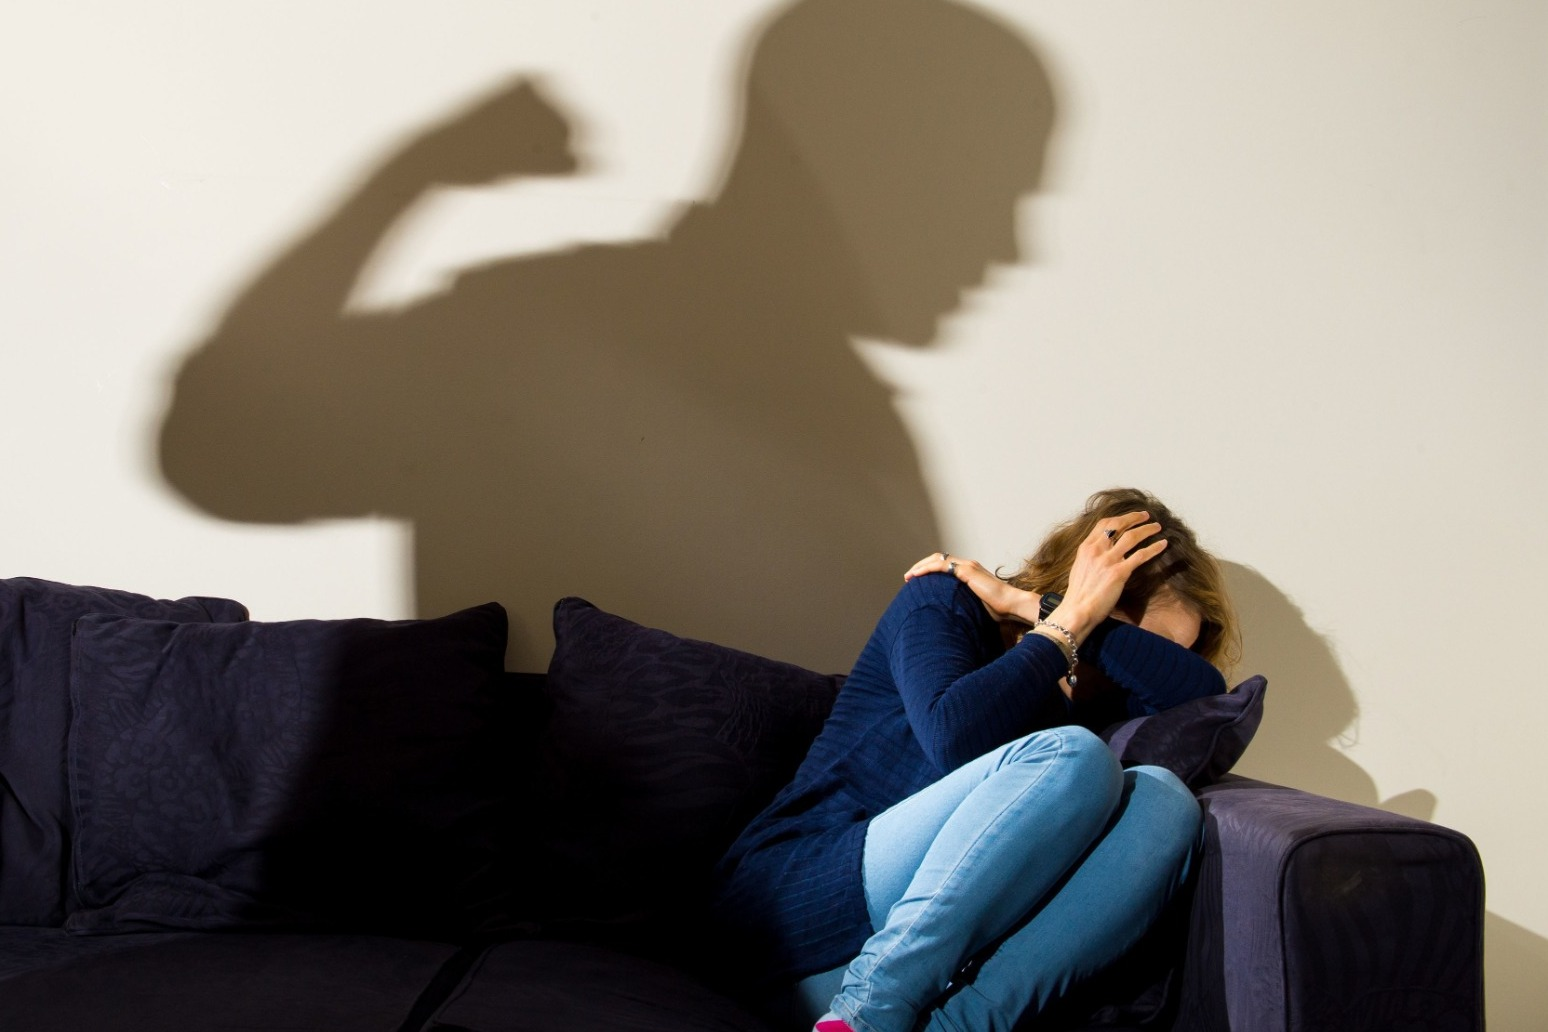 Domestic abuse survivors 'put at further risk by lack of secure access to post'